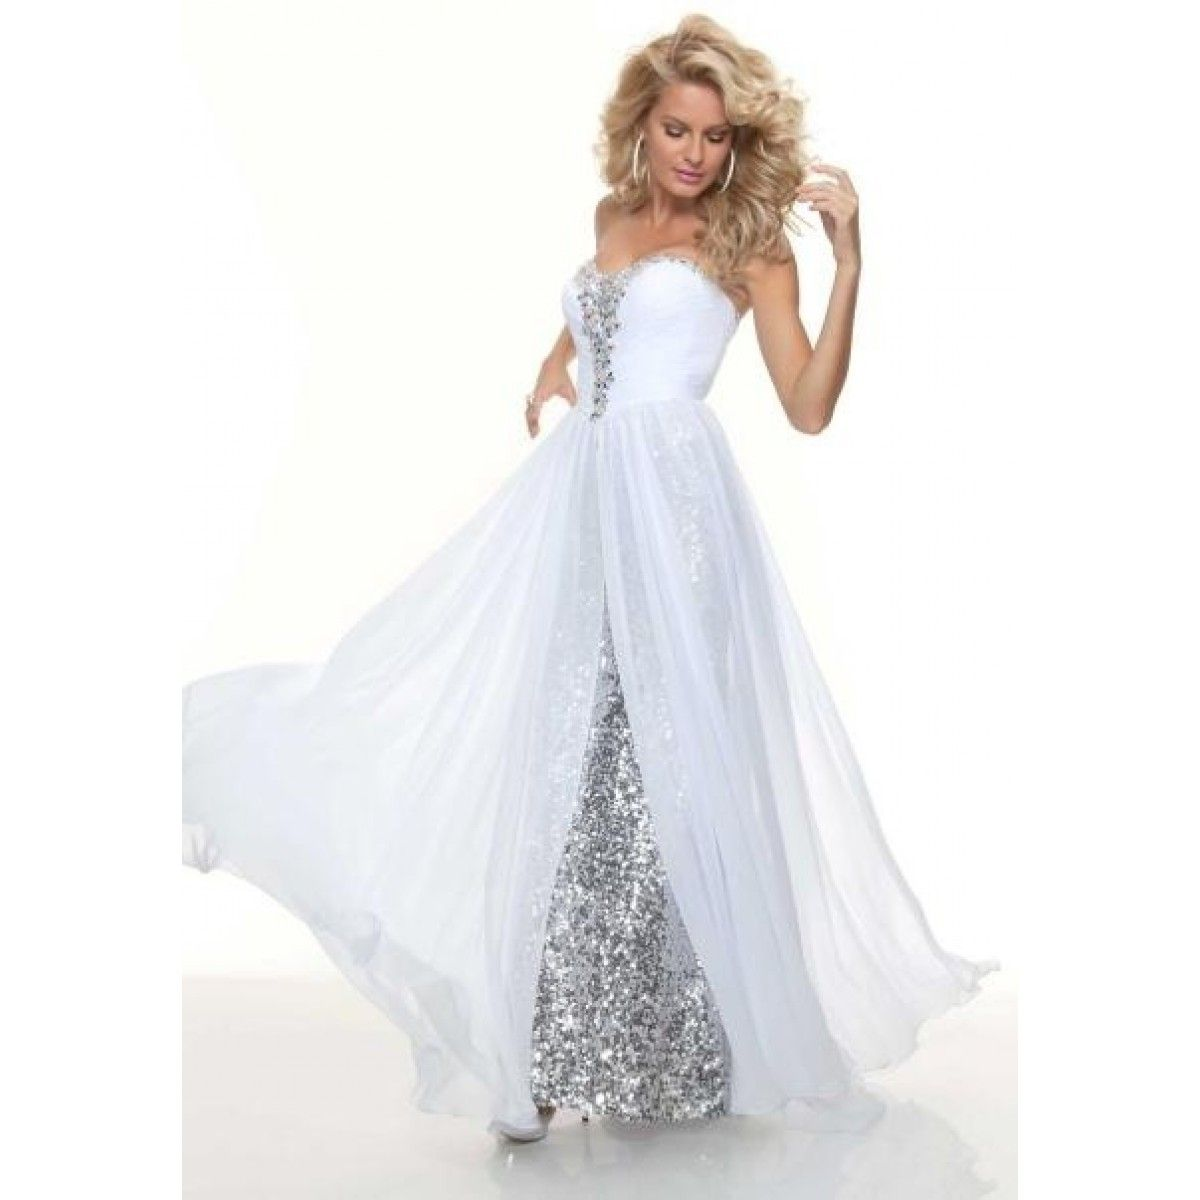 Hotsheath sweetheart long white sequined flowy prom dress with